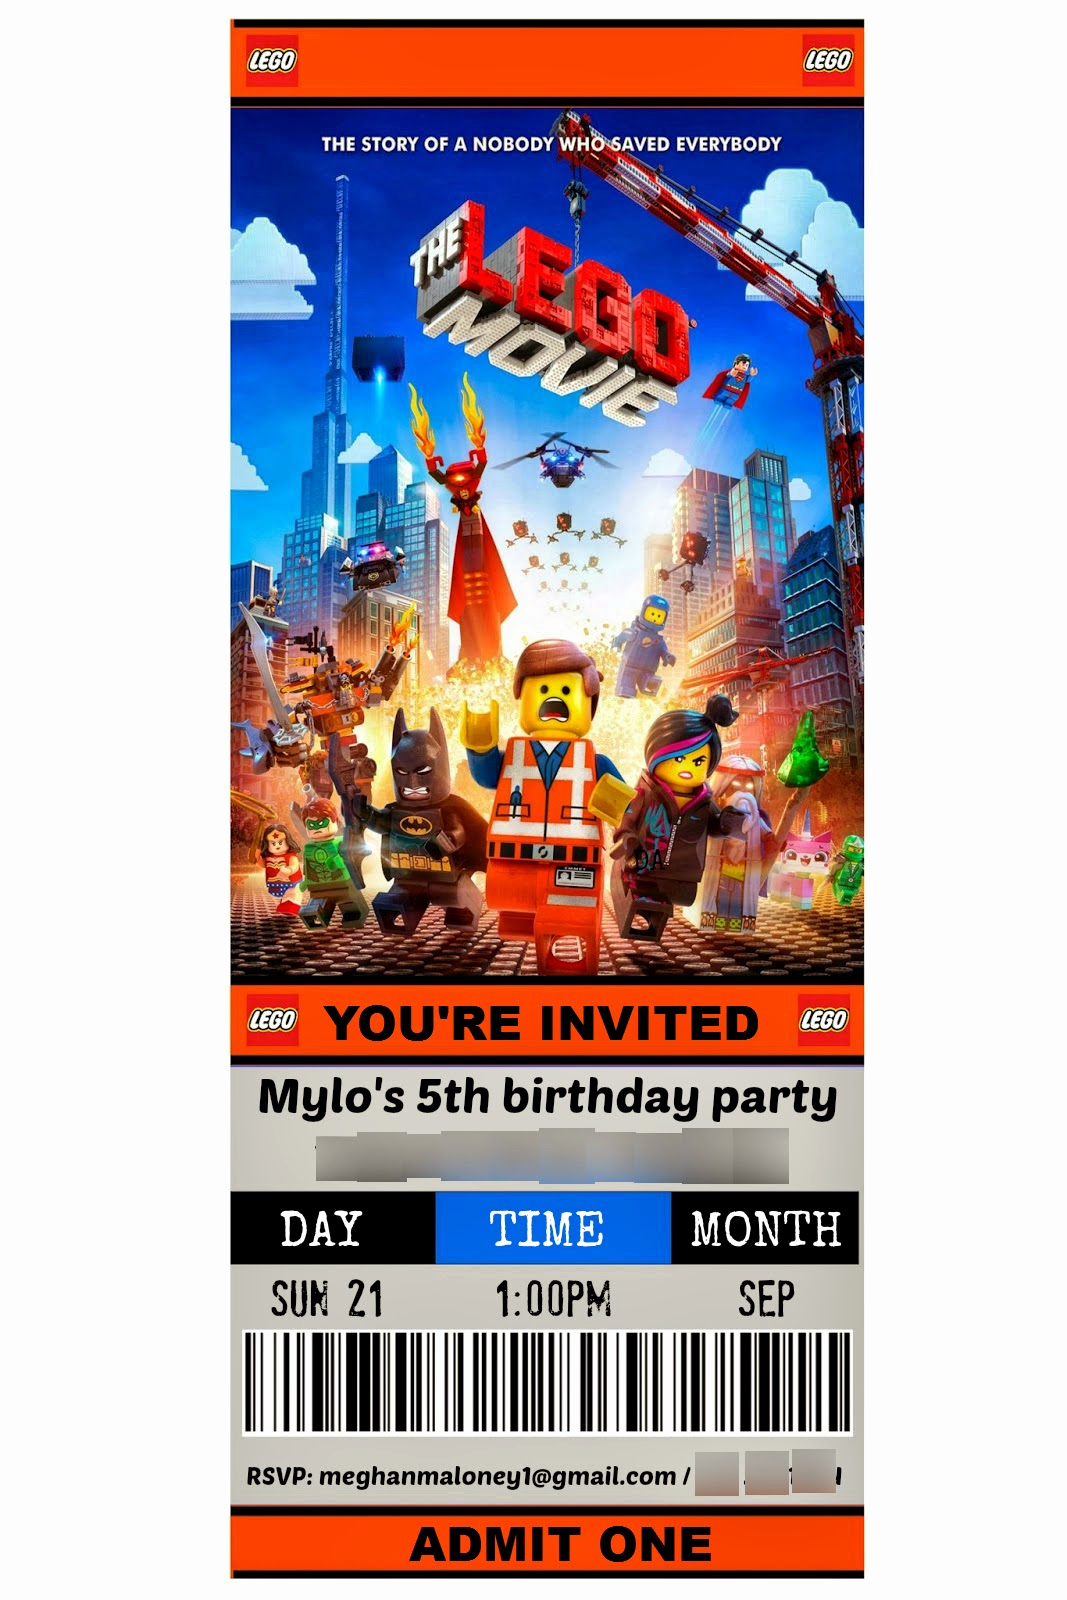 Lego Party Invitation Template Elegant How to the Ultimate Lego Movie theme Party Ideas and